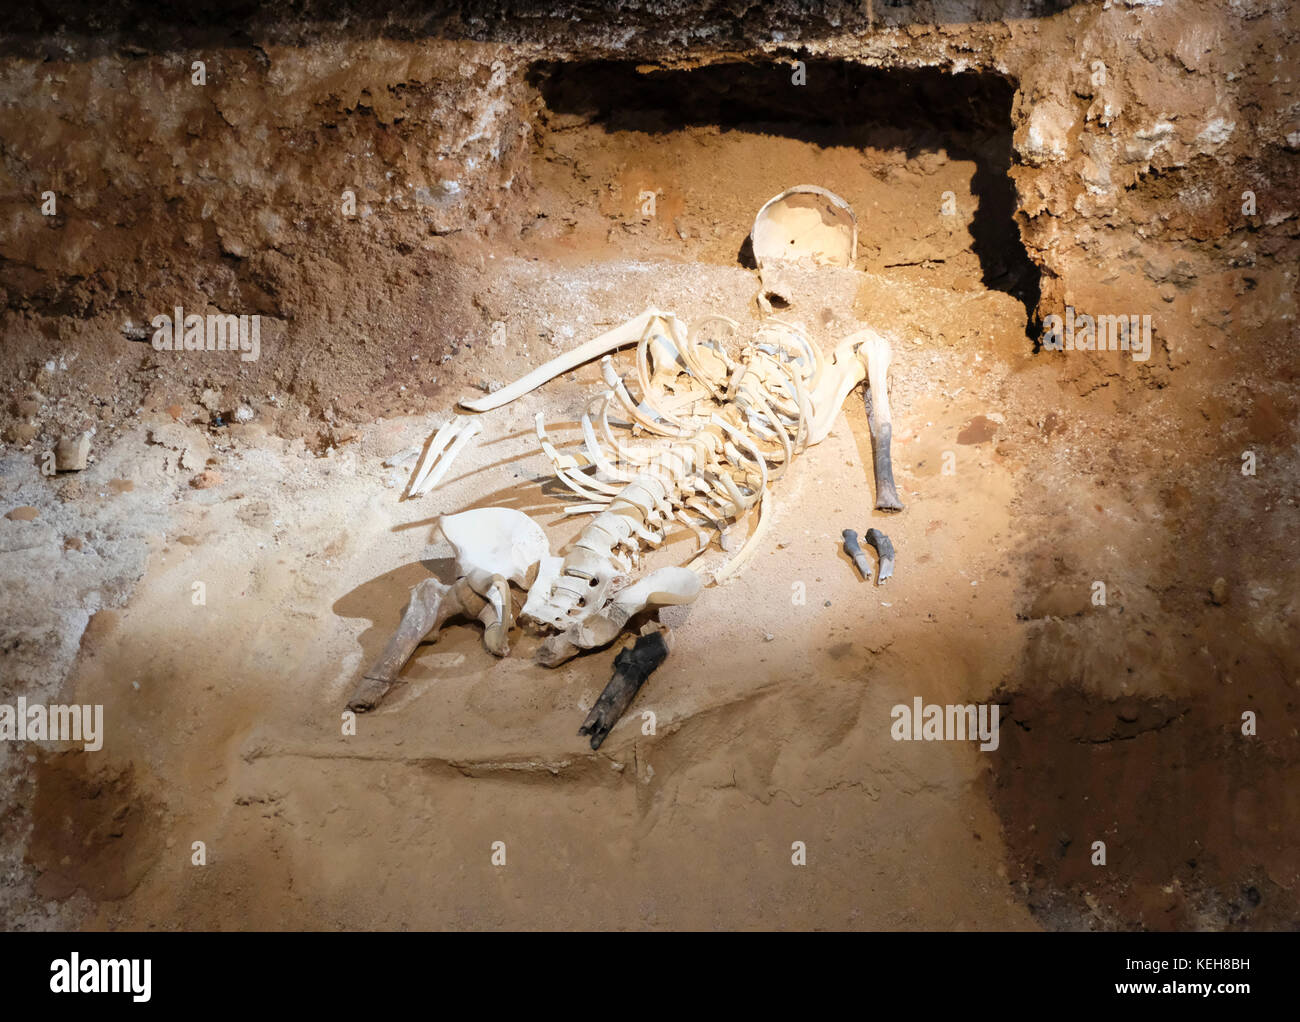 mammoth cave black women dating site Mammoth cave cabins hot tubs  bowls of and her eyes were cave black as her hand reached out, cal opened view document  'women for hire: .